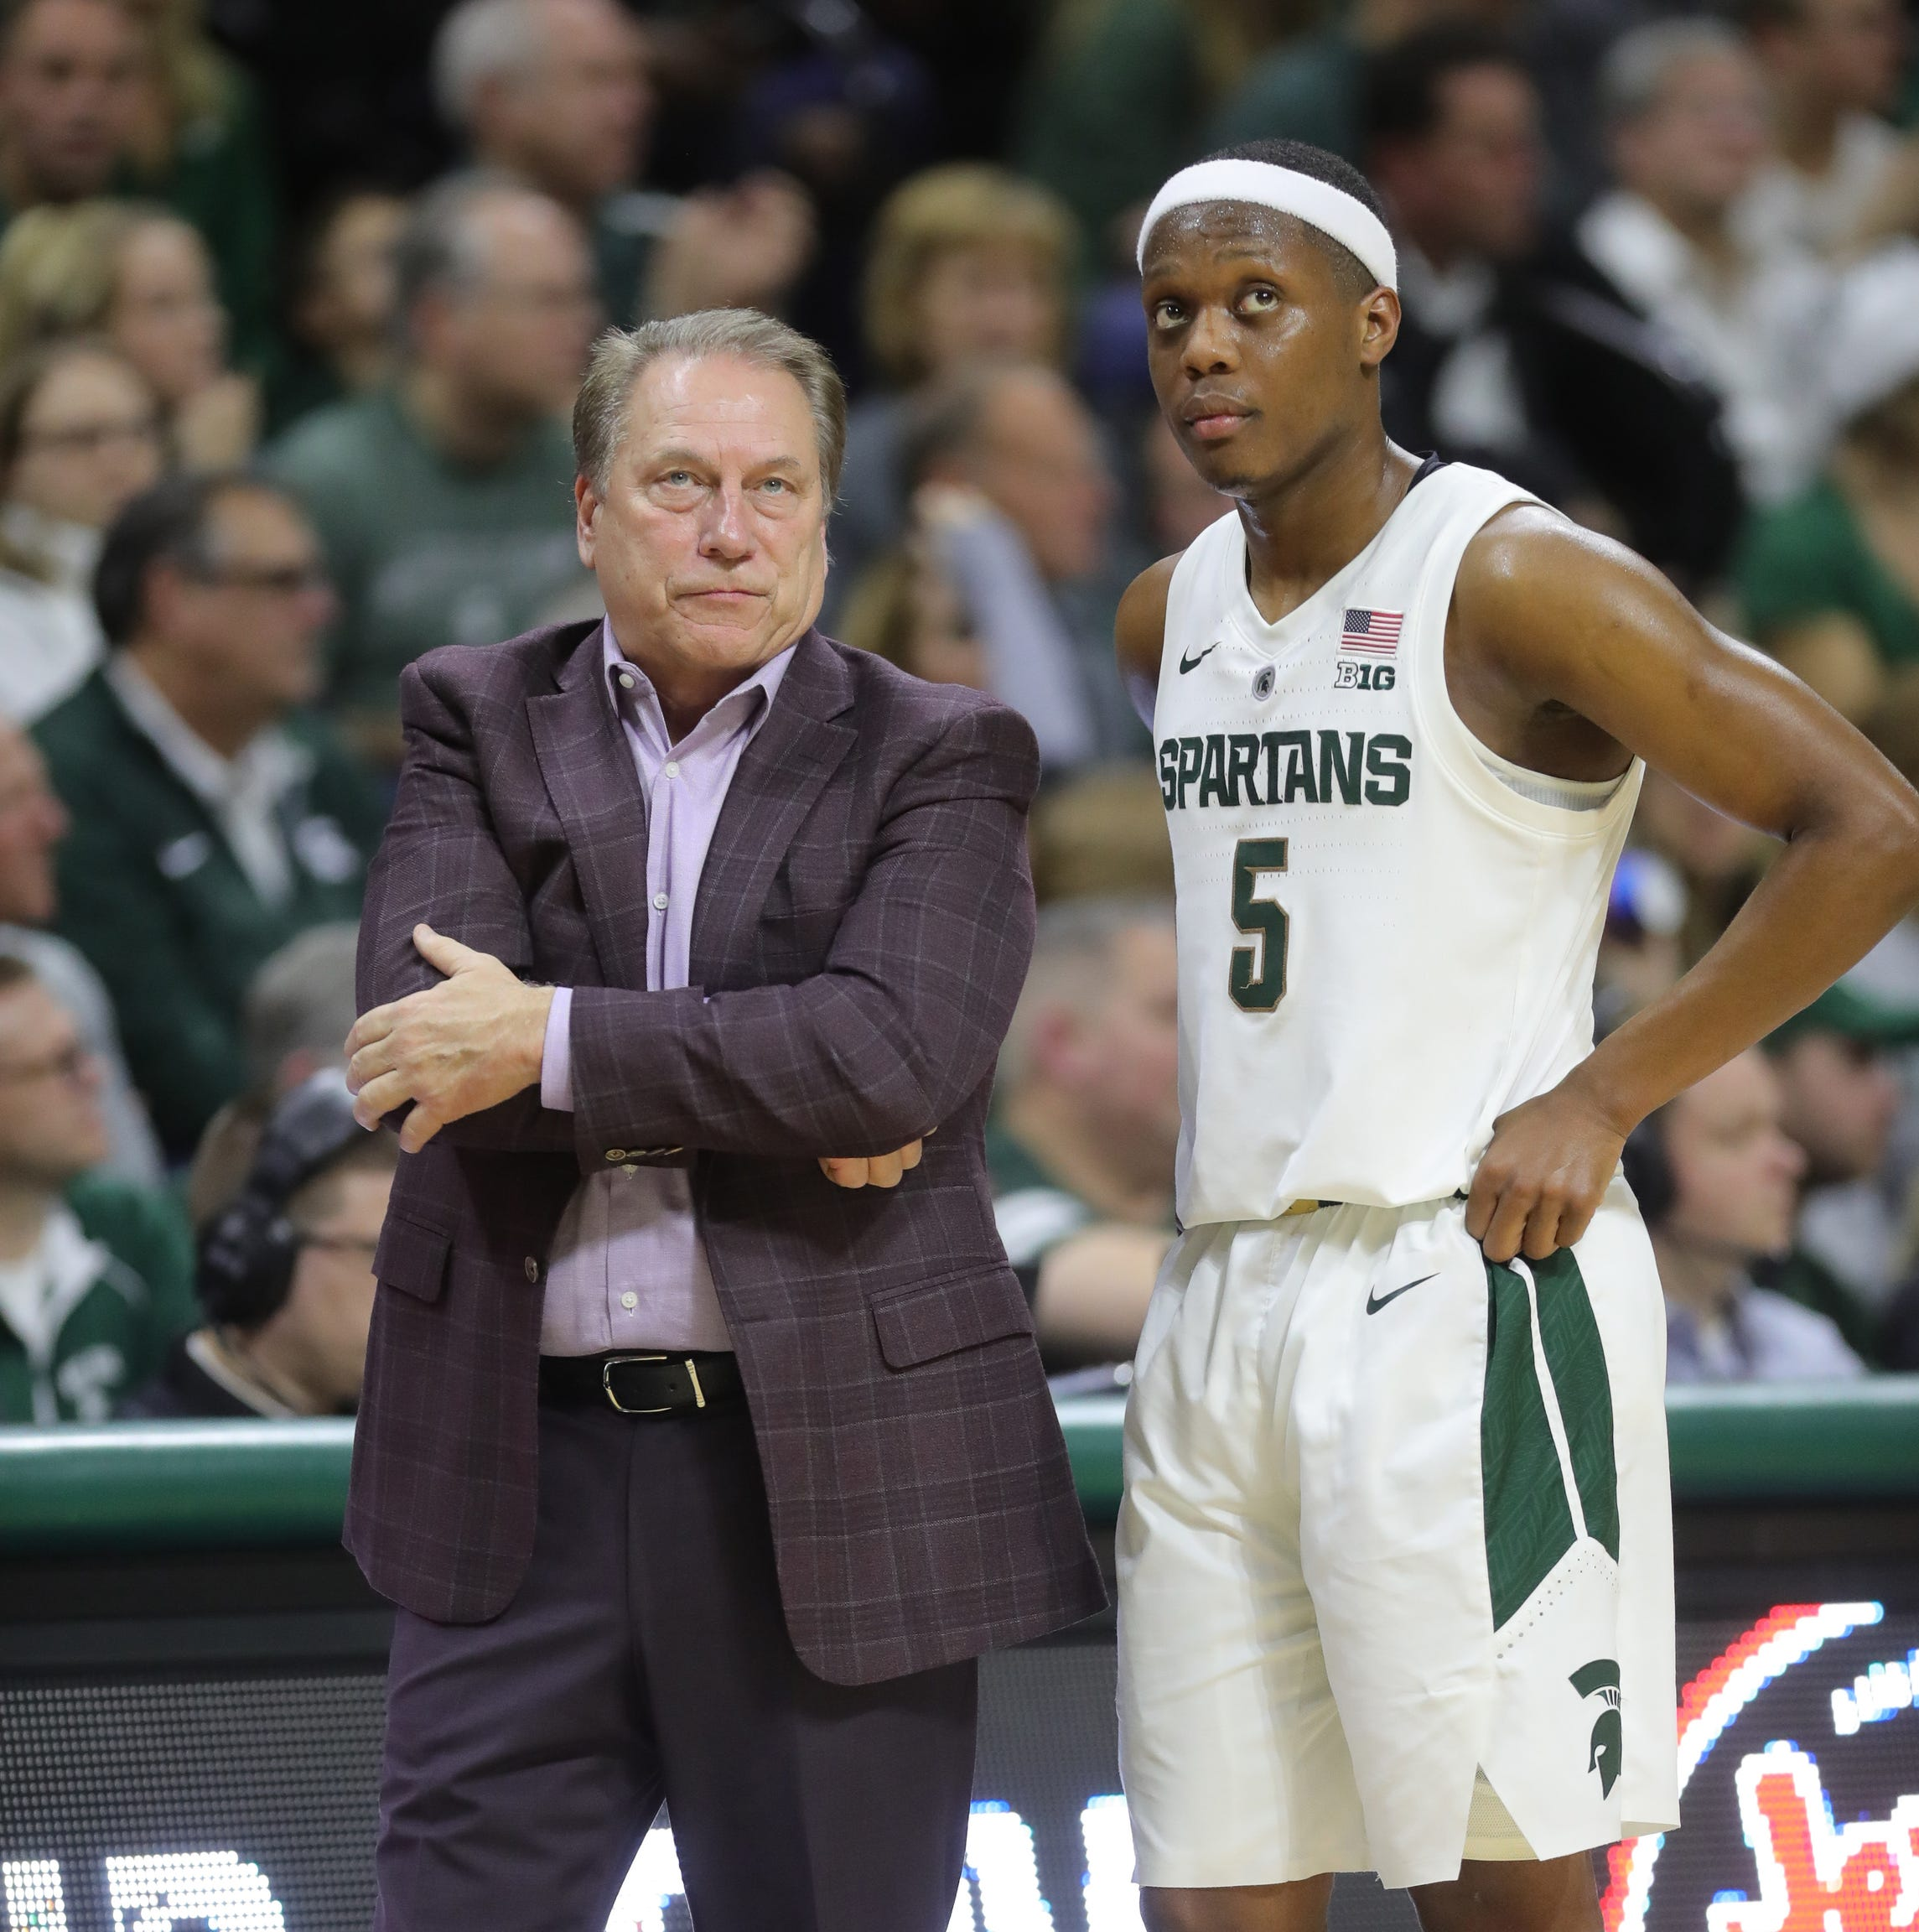 Michigan State basketball the favorite to win national title in 2019-20